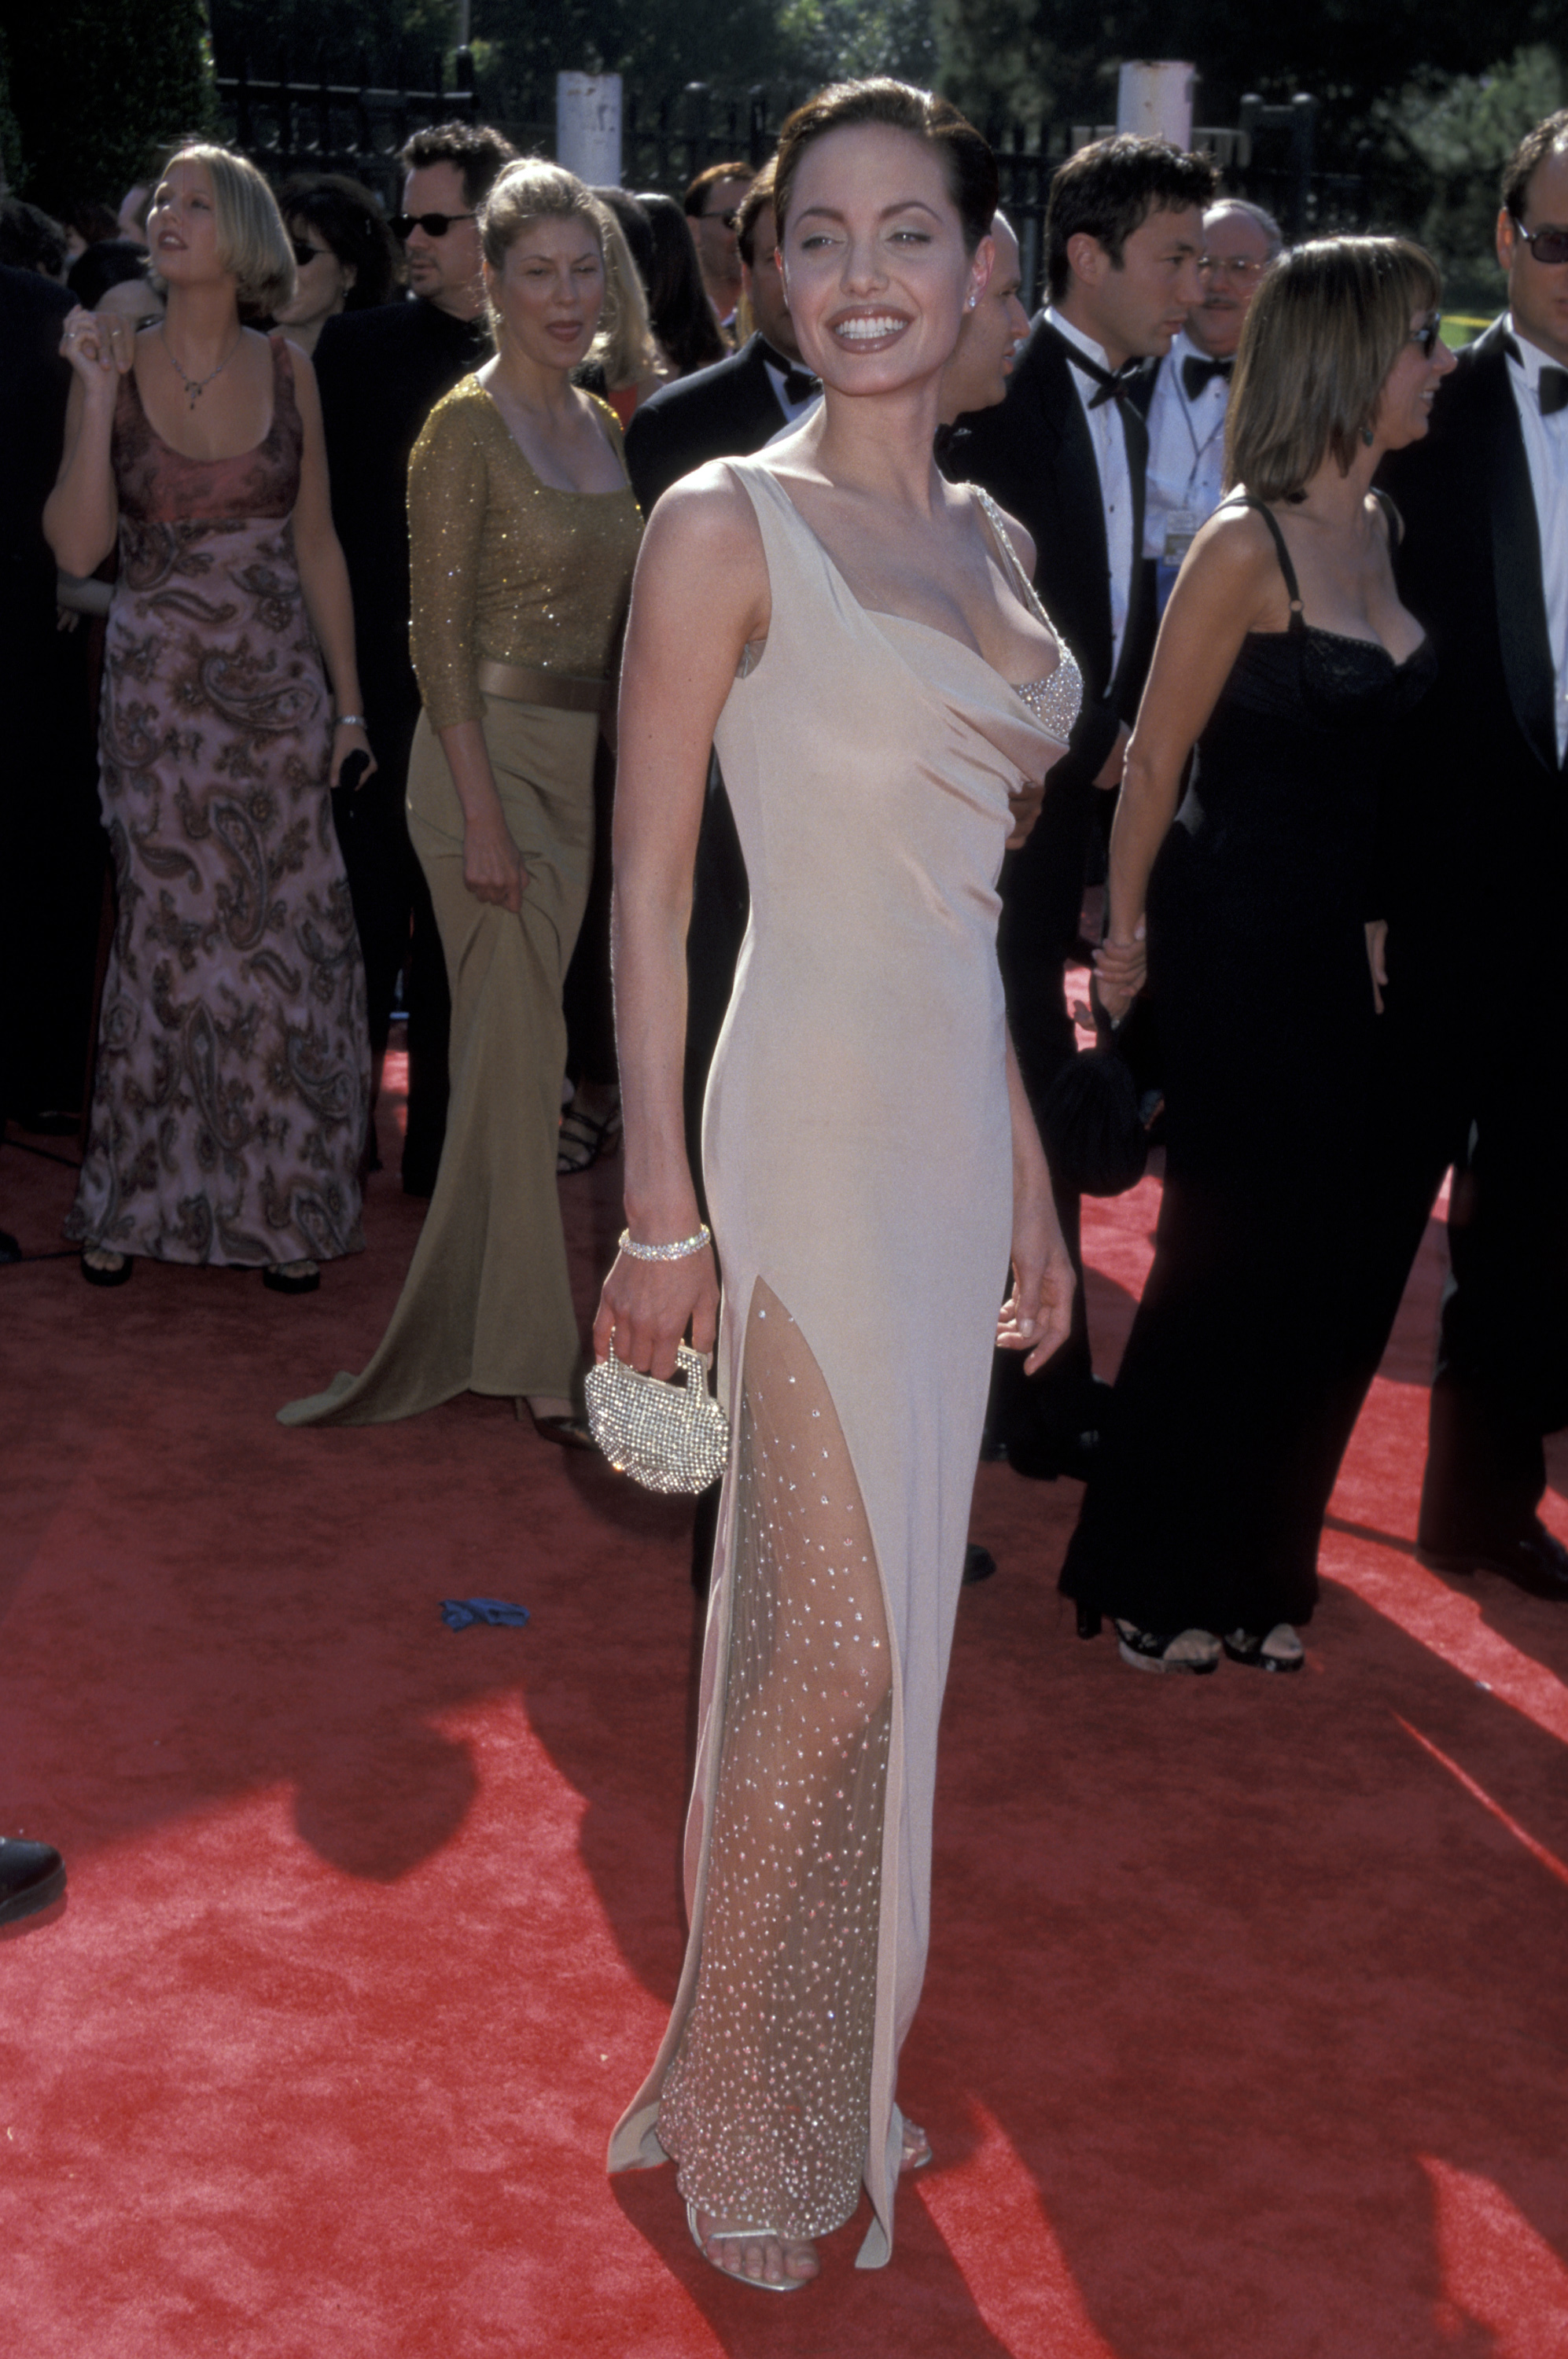 angelina jolie smiling on the red carpet wearing a slit dress